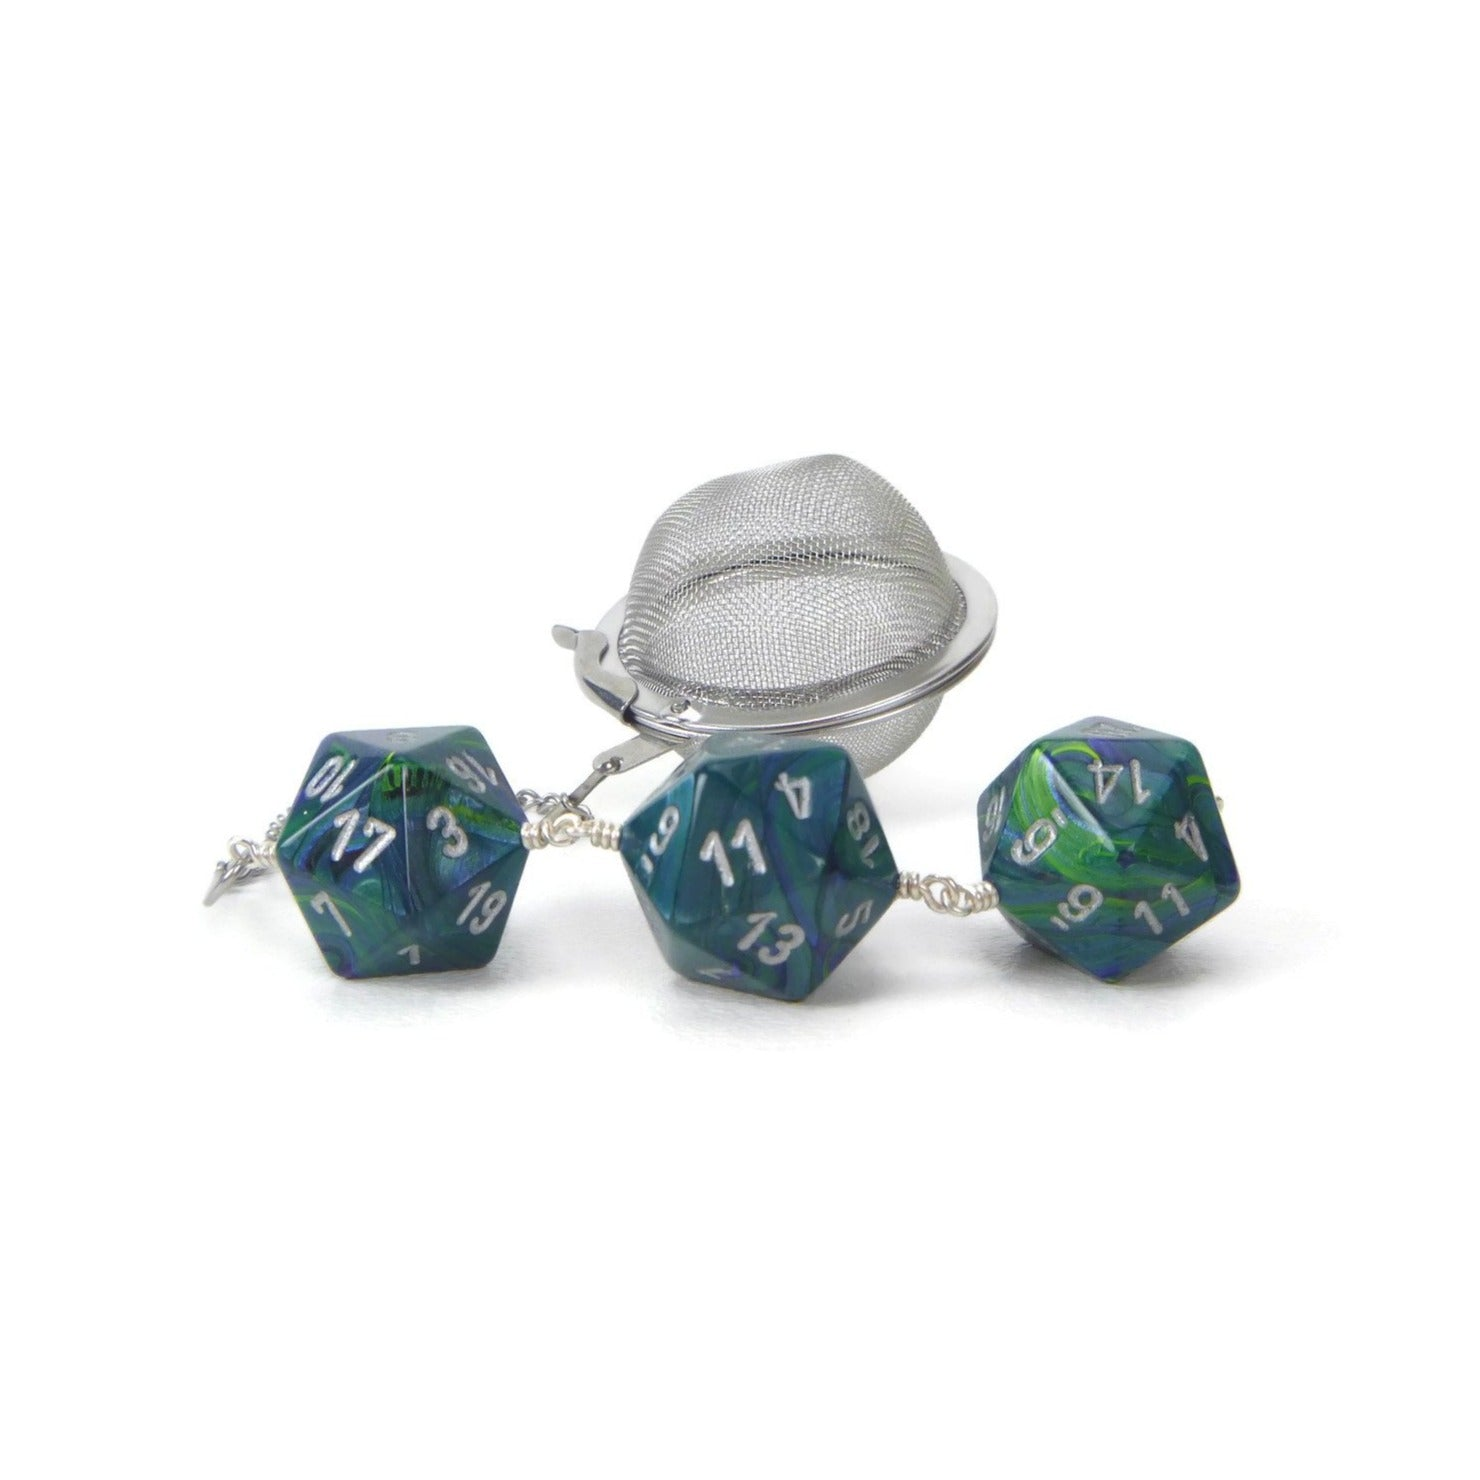 Tea Infuser with Green and Blue Swirled Dice Trio